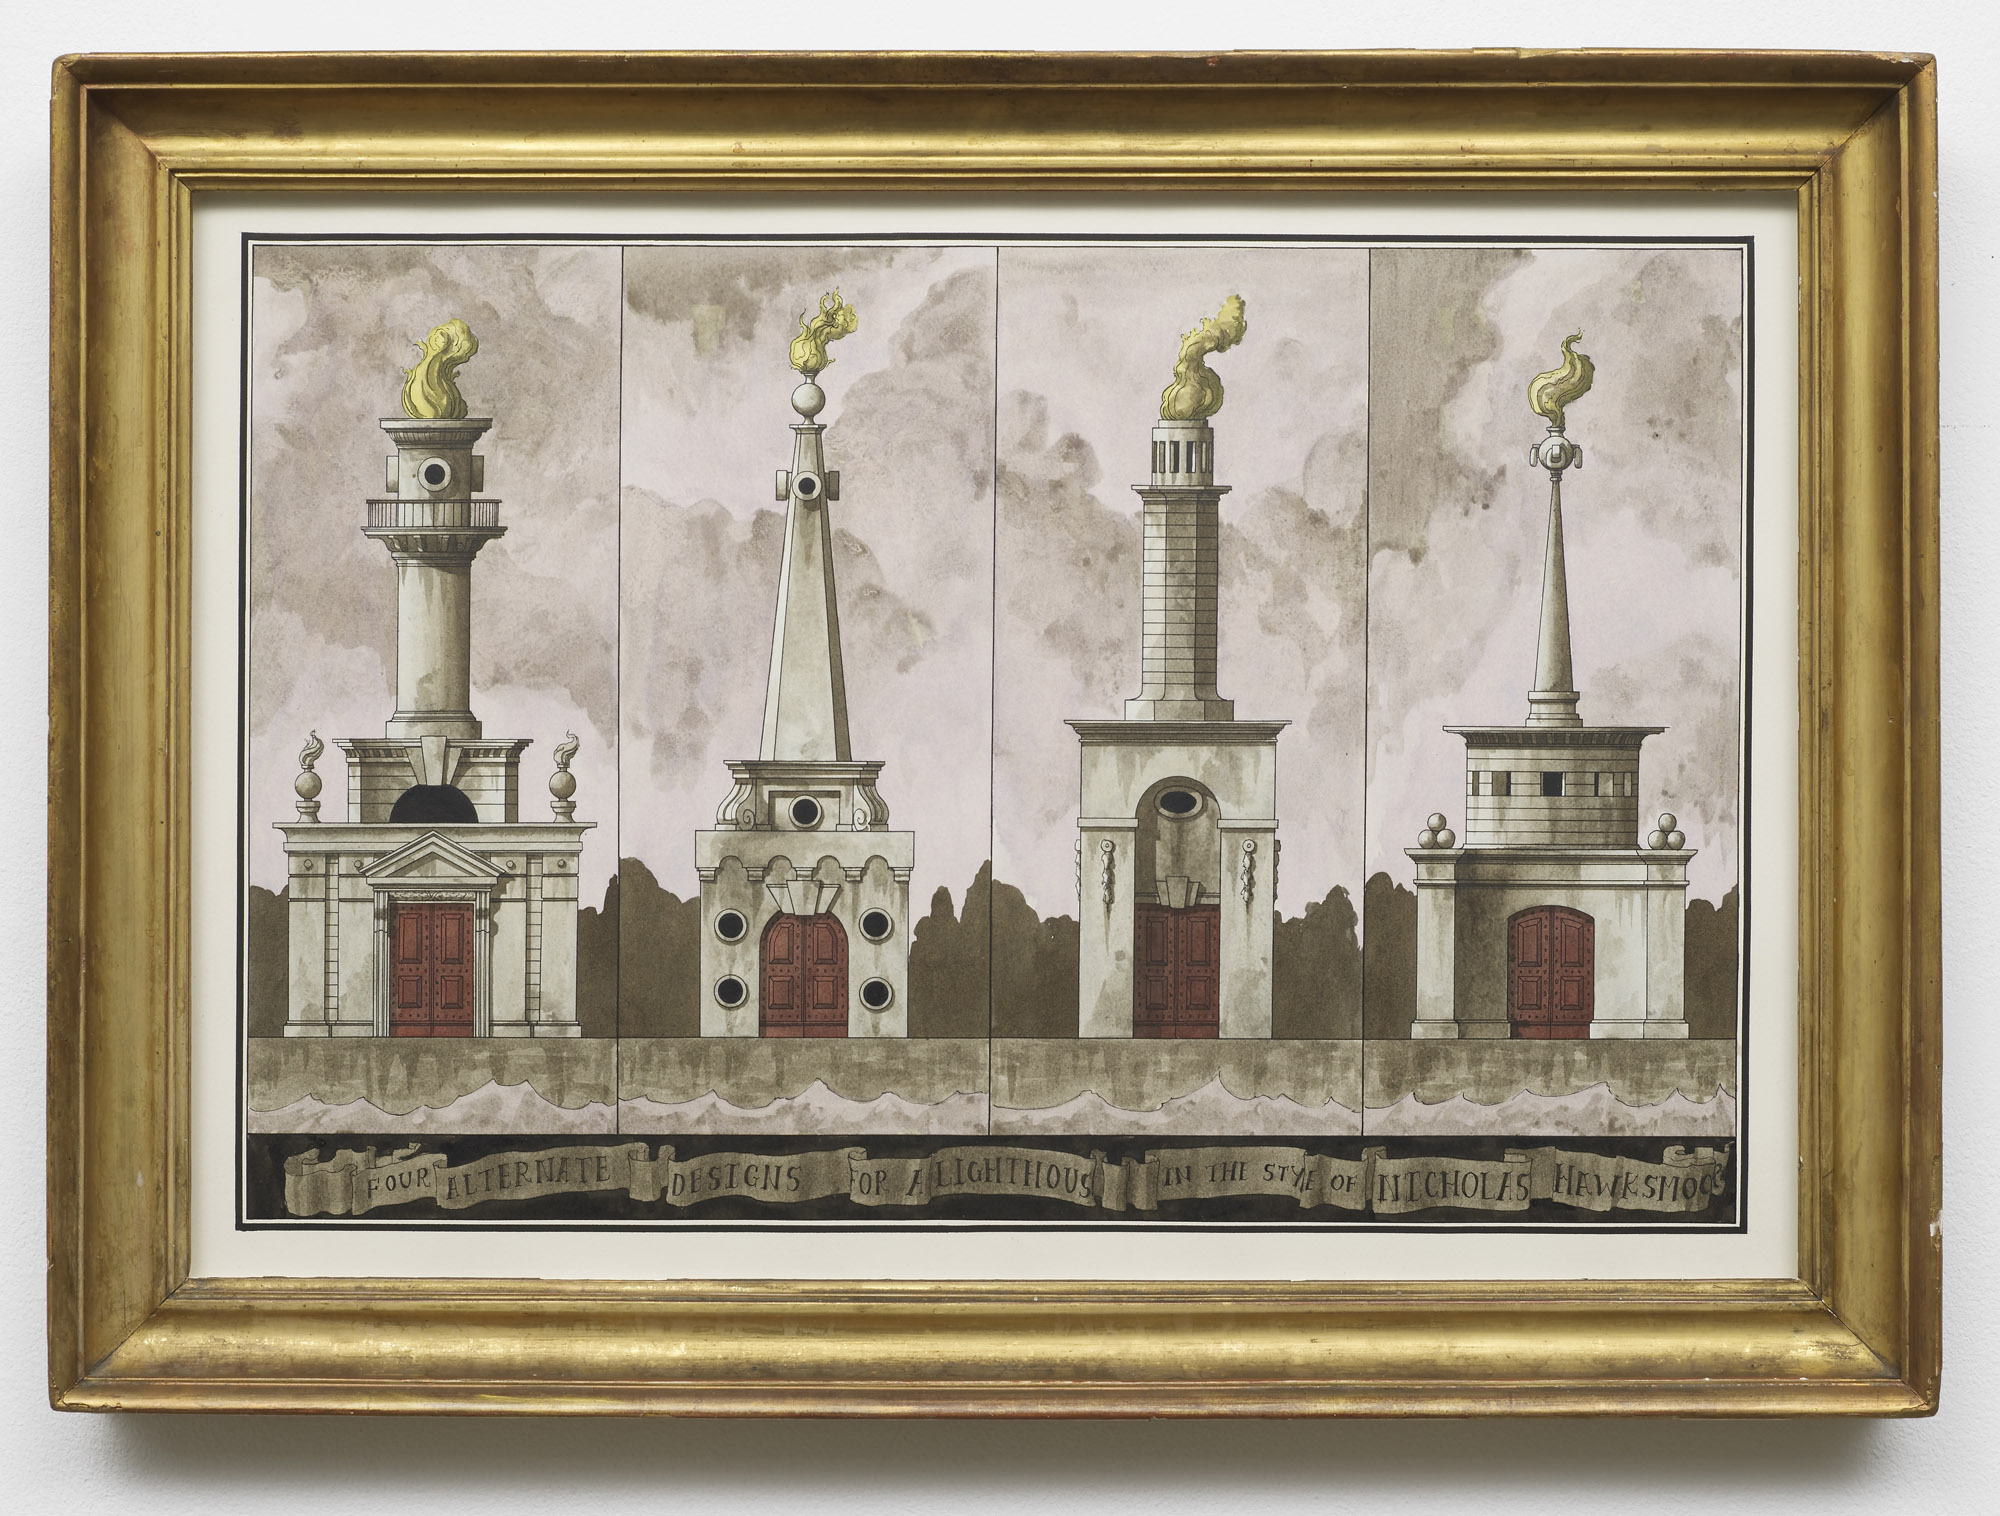 Four Alternate Designs for a Lighthouse in the Style of Nicholas Hawksmoor  2014  Ink and watercolour on paper in artist's frame  55 x 76.5 cm / 21.6 x 30.1 in